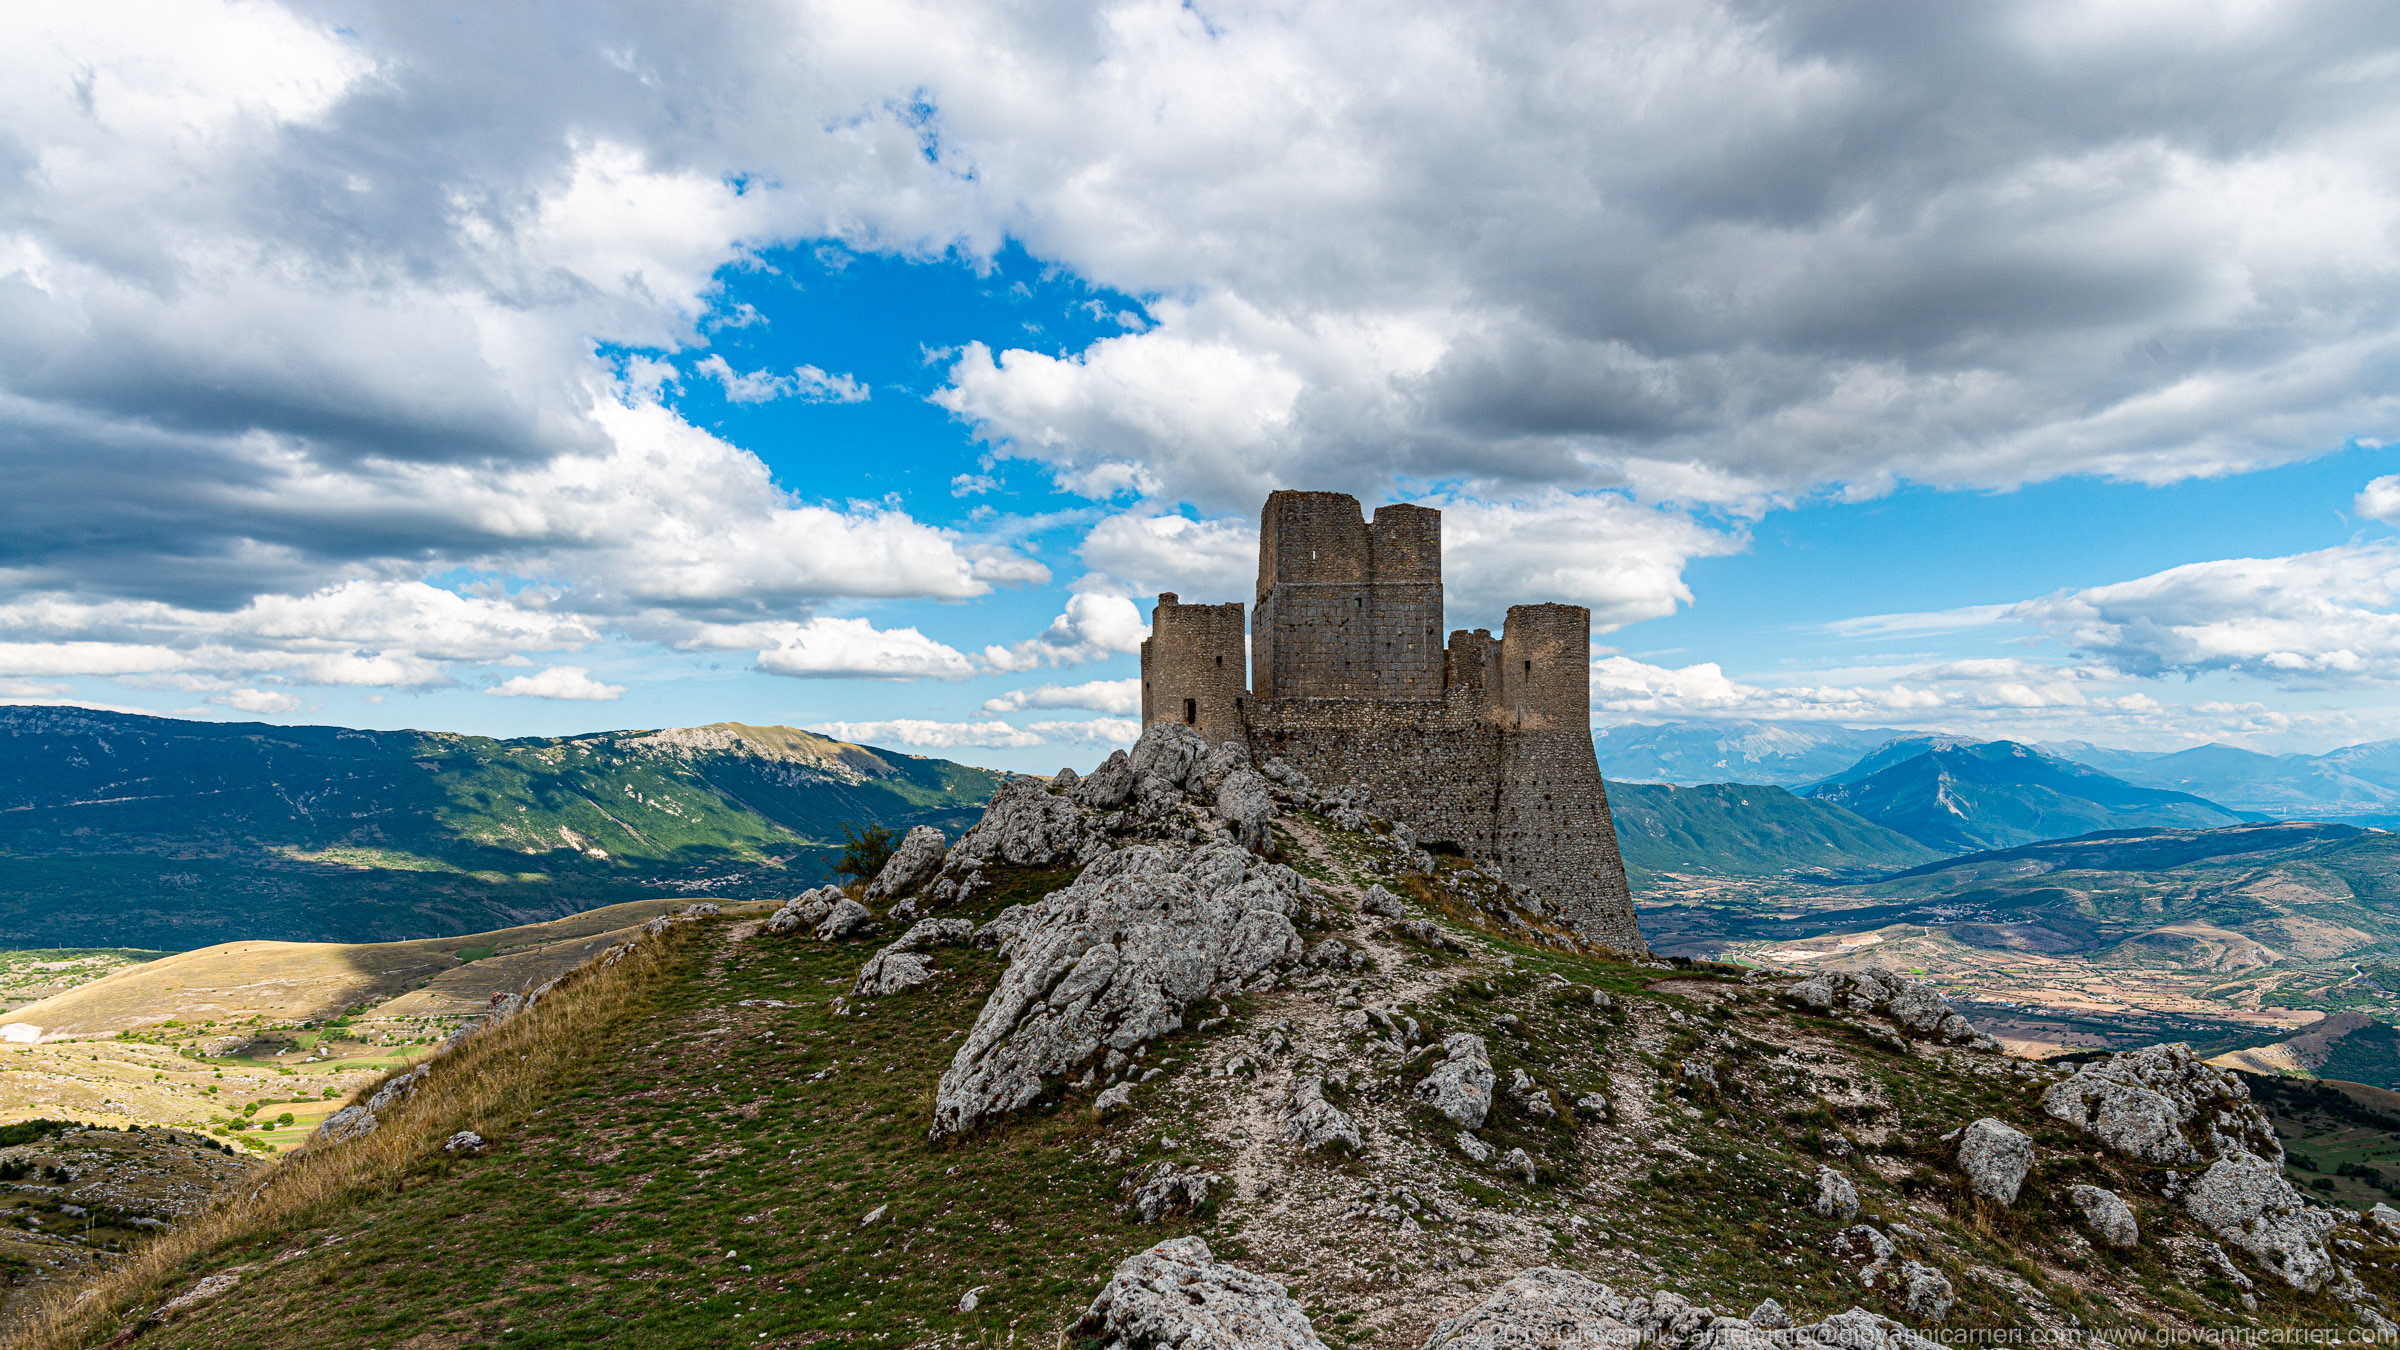 Photos of Rocca Calascio